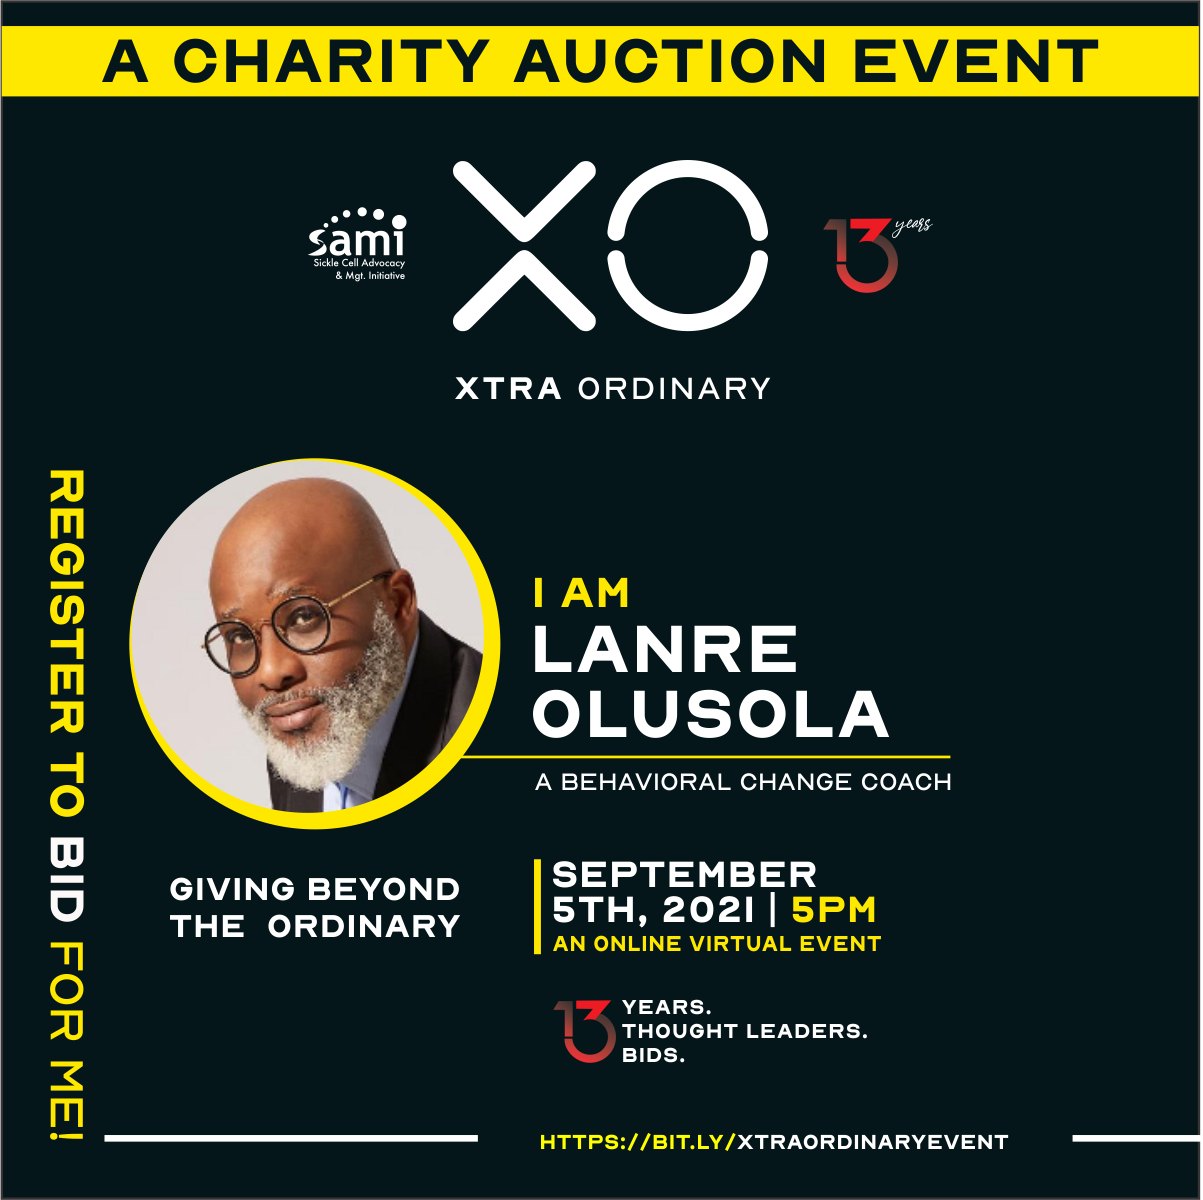 8 Top Notch Global Thought Leaders Set To Storm 2021 Xtra Ordinary Charity Auction For Sickle Cell Patients